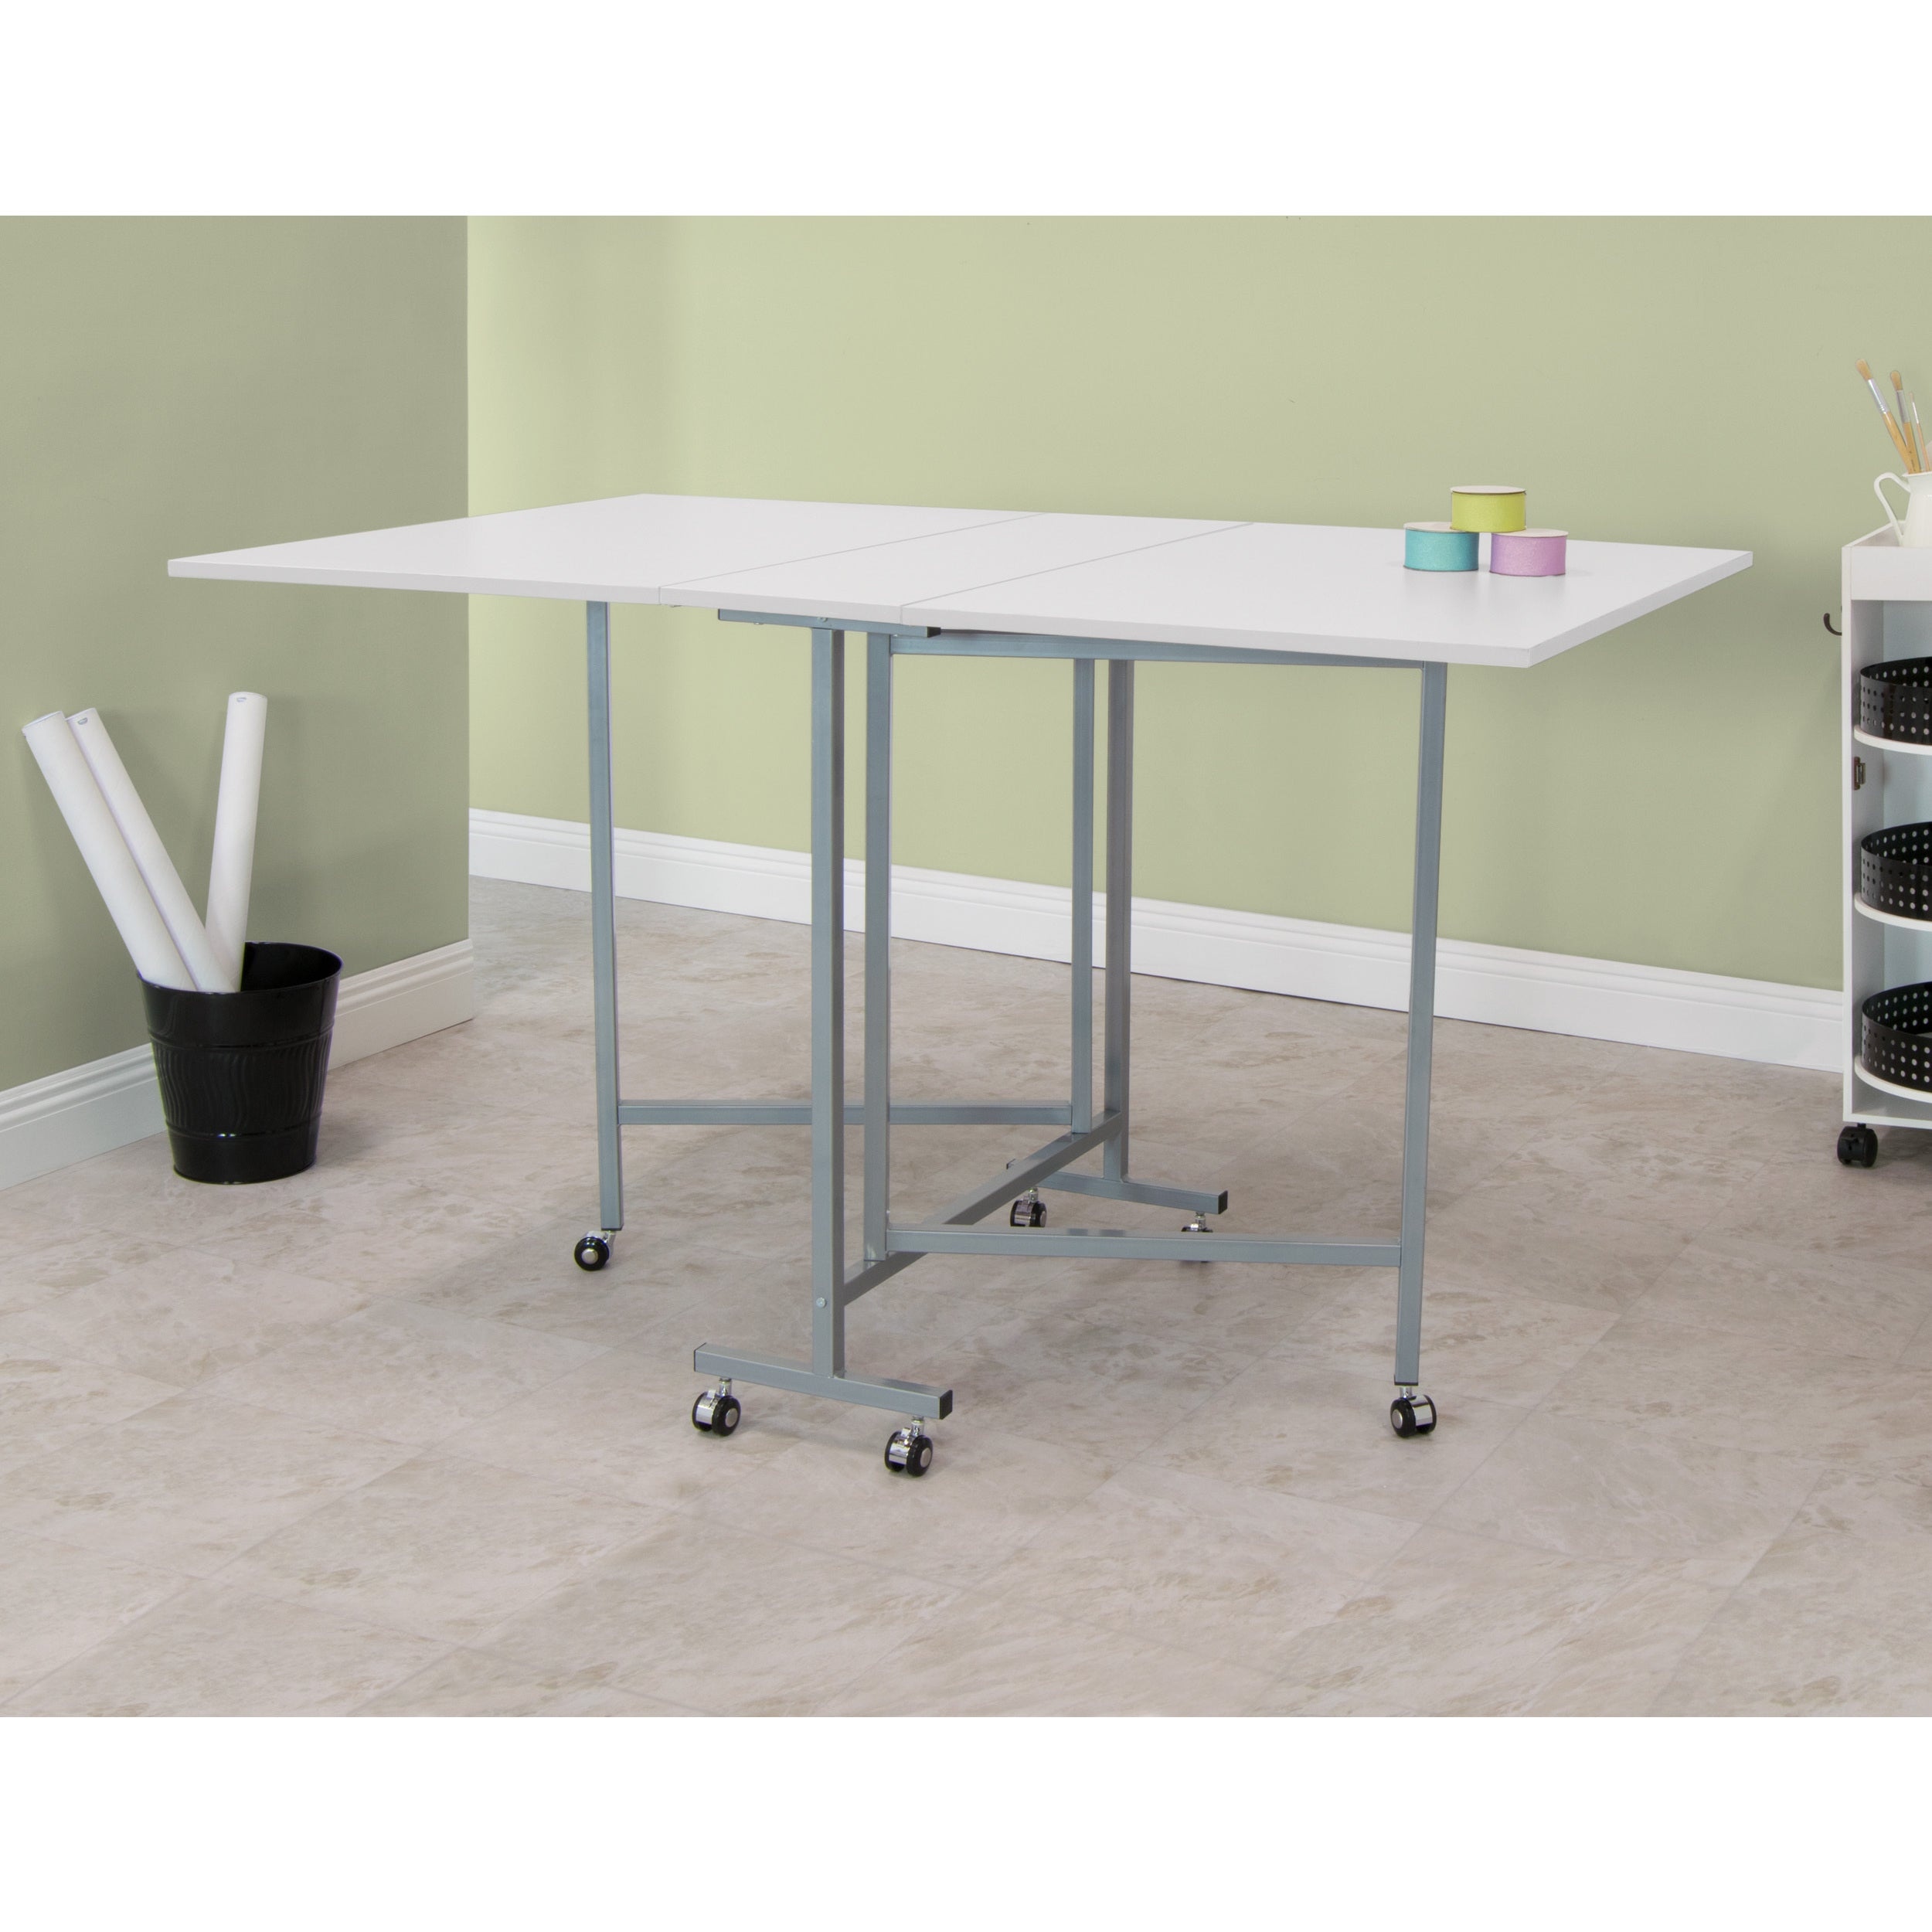 Studio Designs White Powder Coated Craft And Cutting Sewing Table On Free Shipping Today 12884533